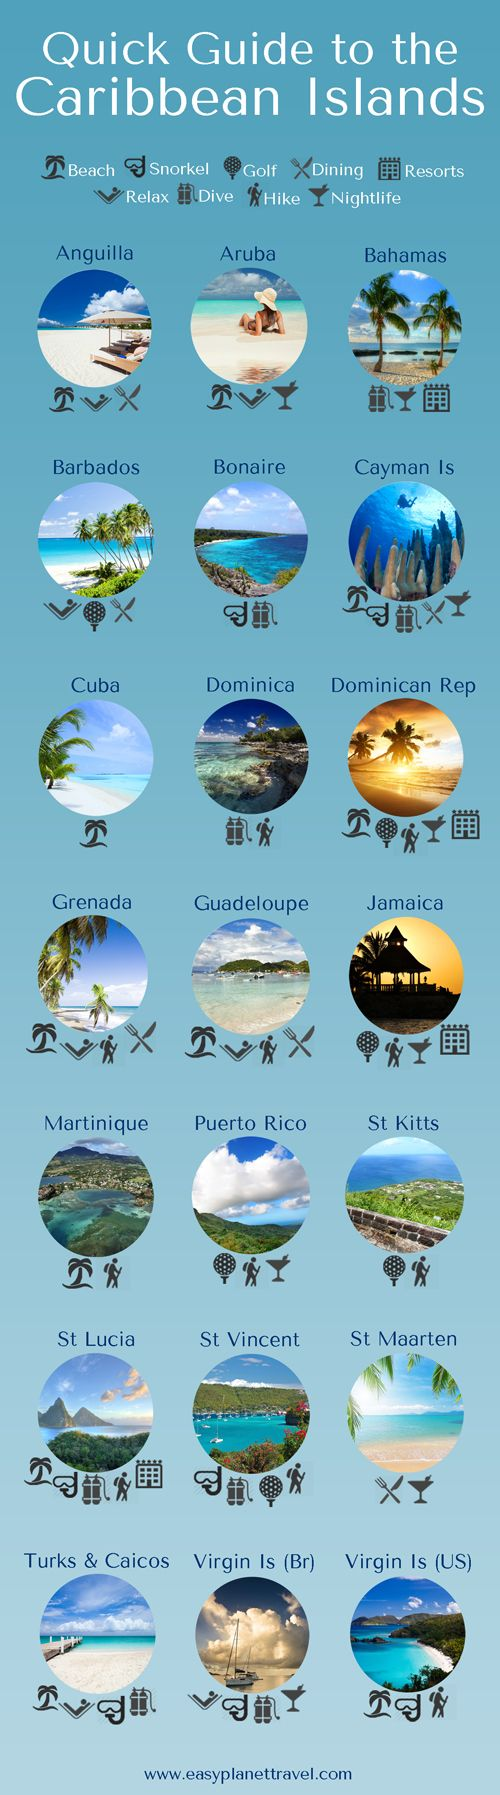 Quick Guide to the Caribbean Islands (infographic) | PicadoTur - Consultoria em Viagens | Agencia de viagem | picadotur@gmail.com | (13) 98153-4577 | Temos whatsapp, facebook, skype, twiter.. e mais! Siga nos| www.easyplanettravel.com/quick-and-easy-guide-to-the-caribbean-islands/